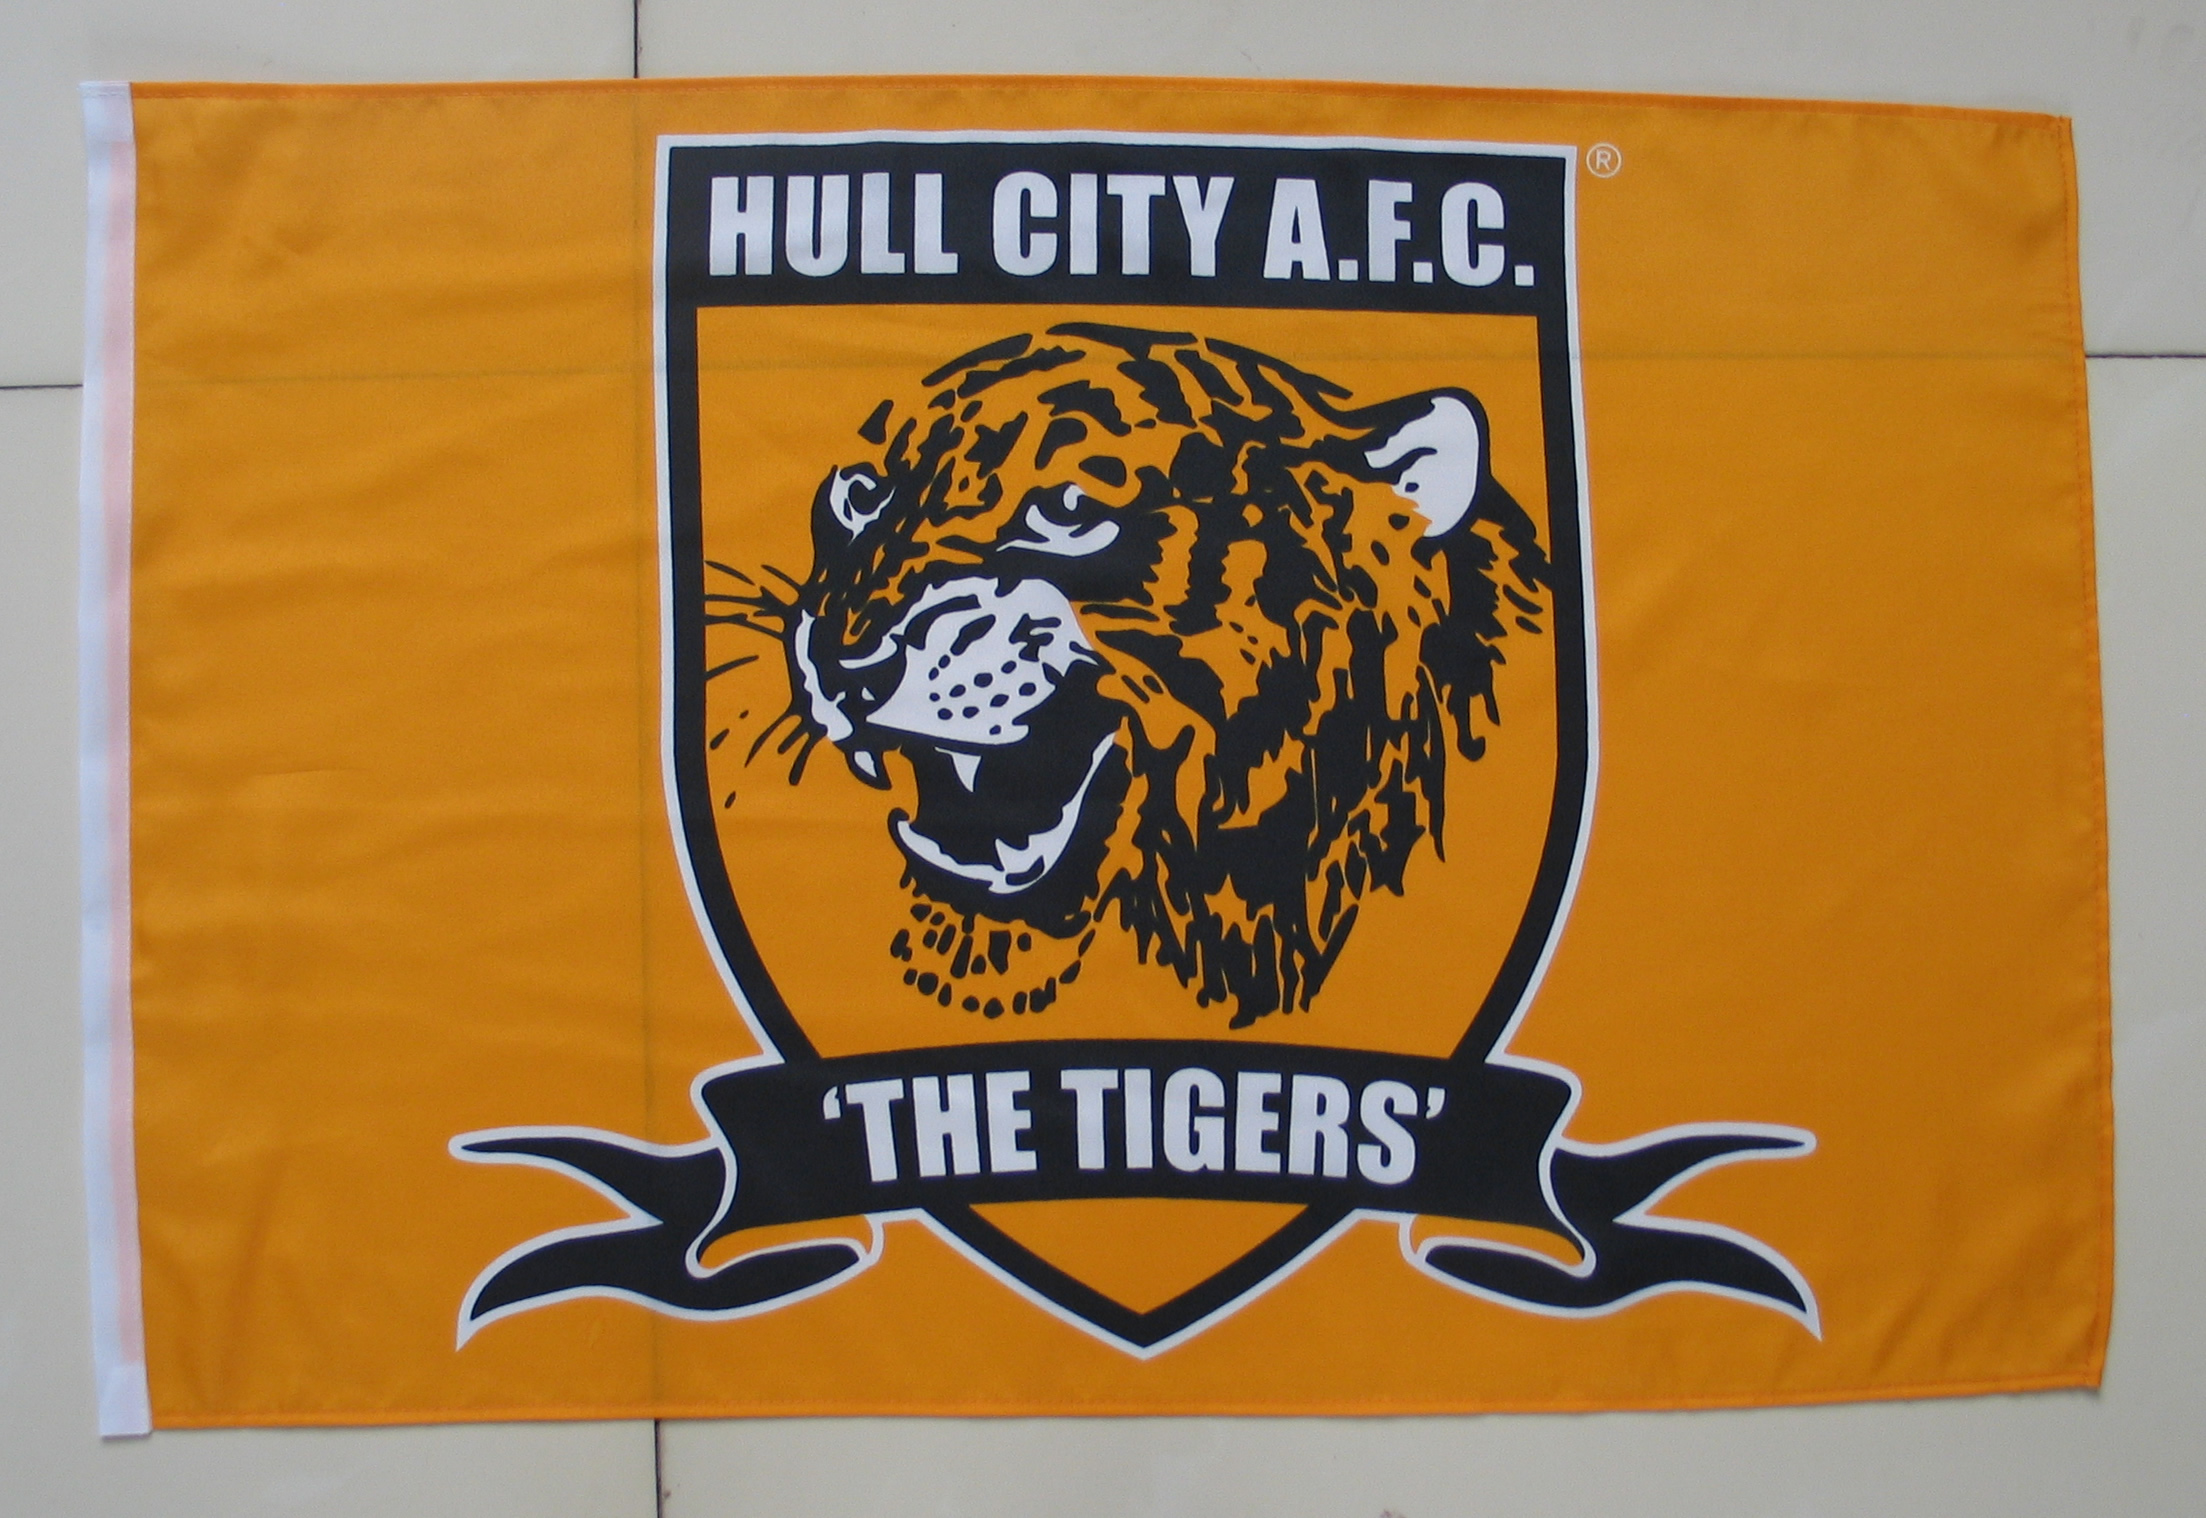 Awesome Hull City AFC Wallpaper